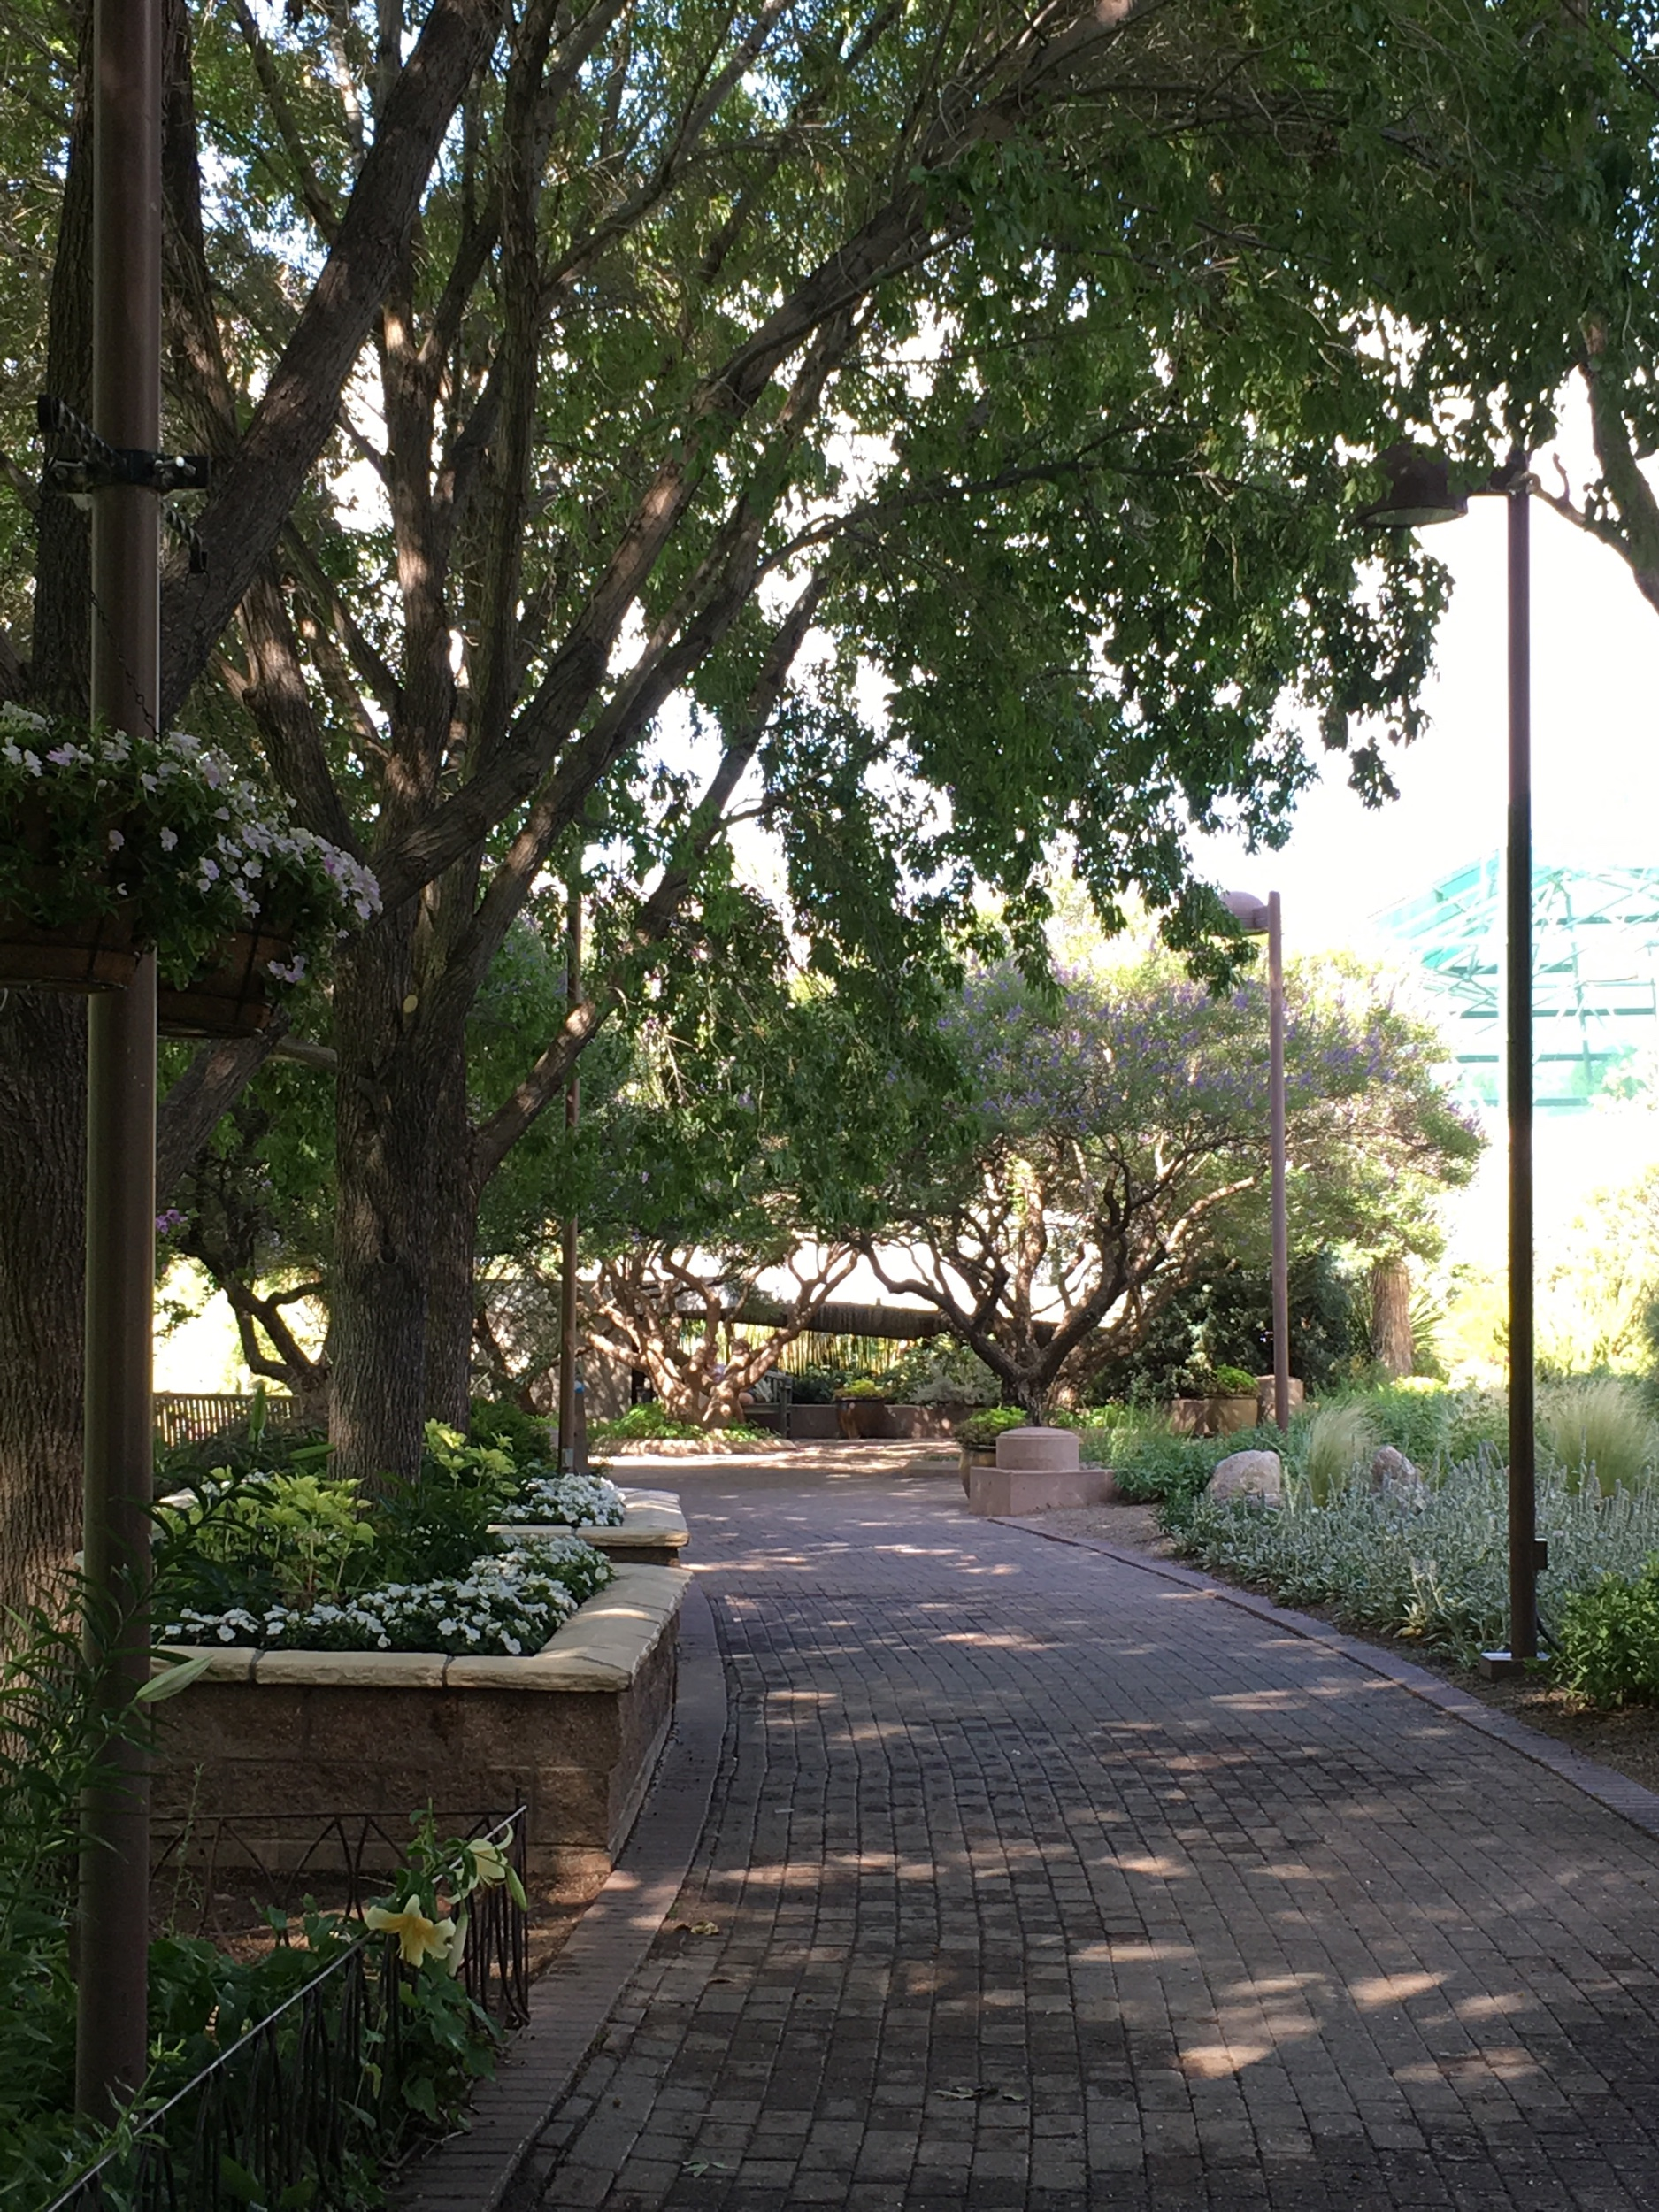 Shady paths offer a cool and tranquil place to walk.